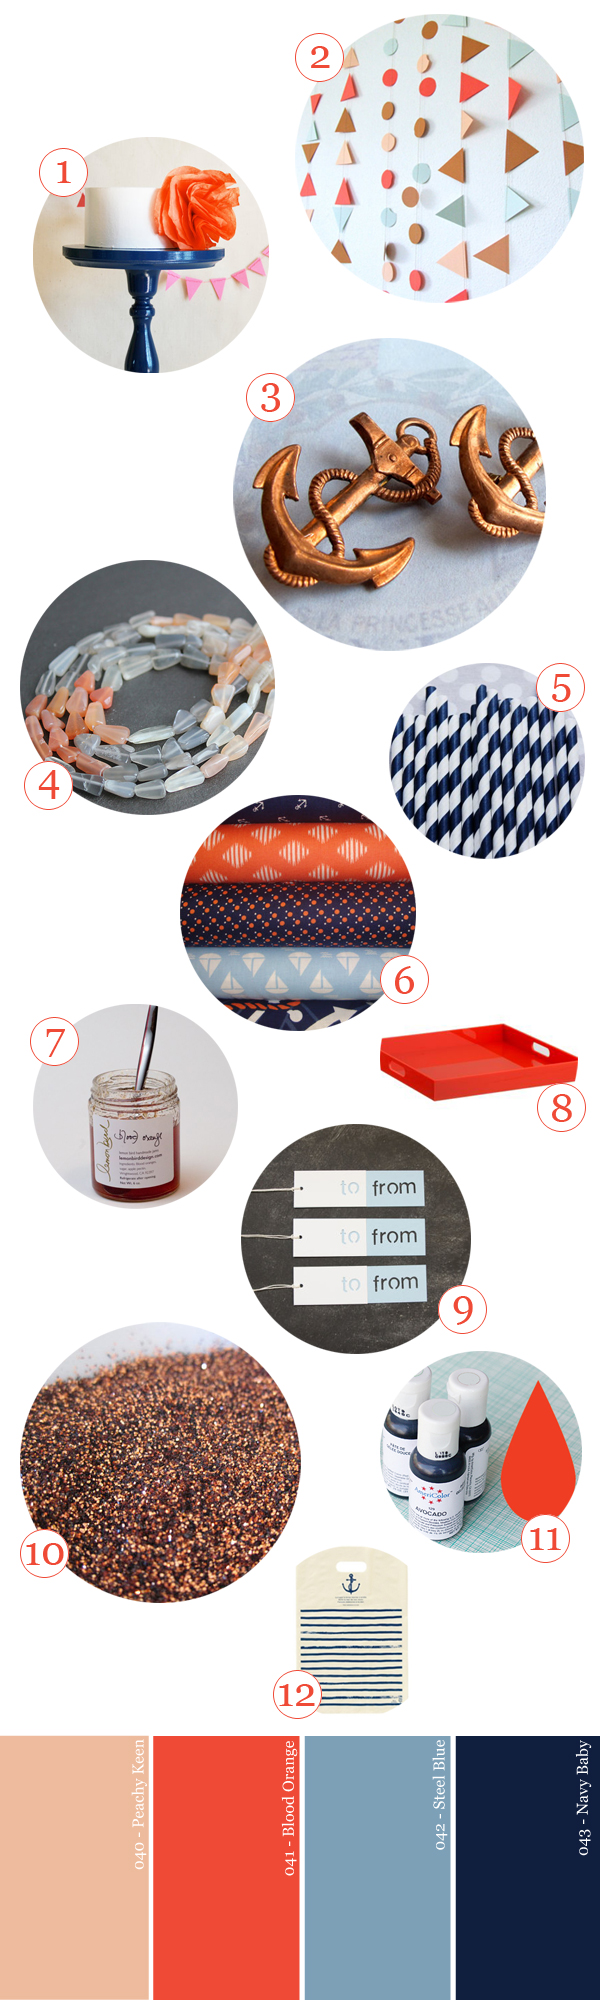 party-supply-guide-peach-orange-copper-navy-blue